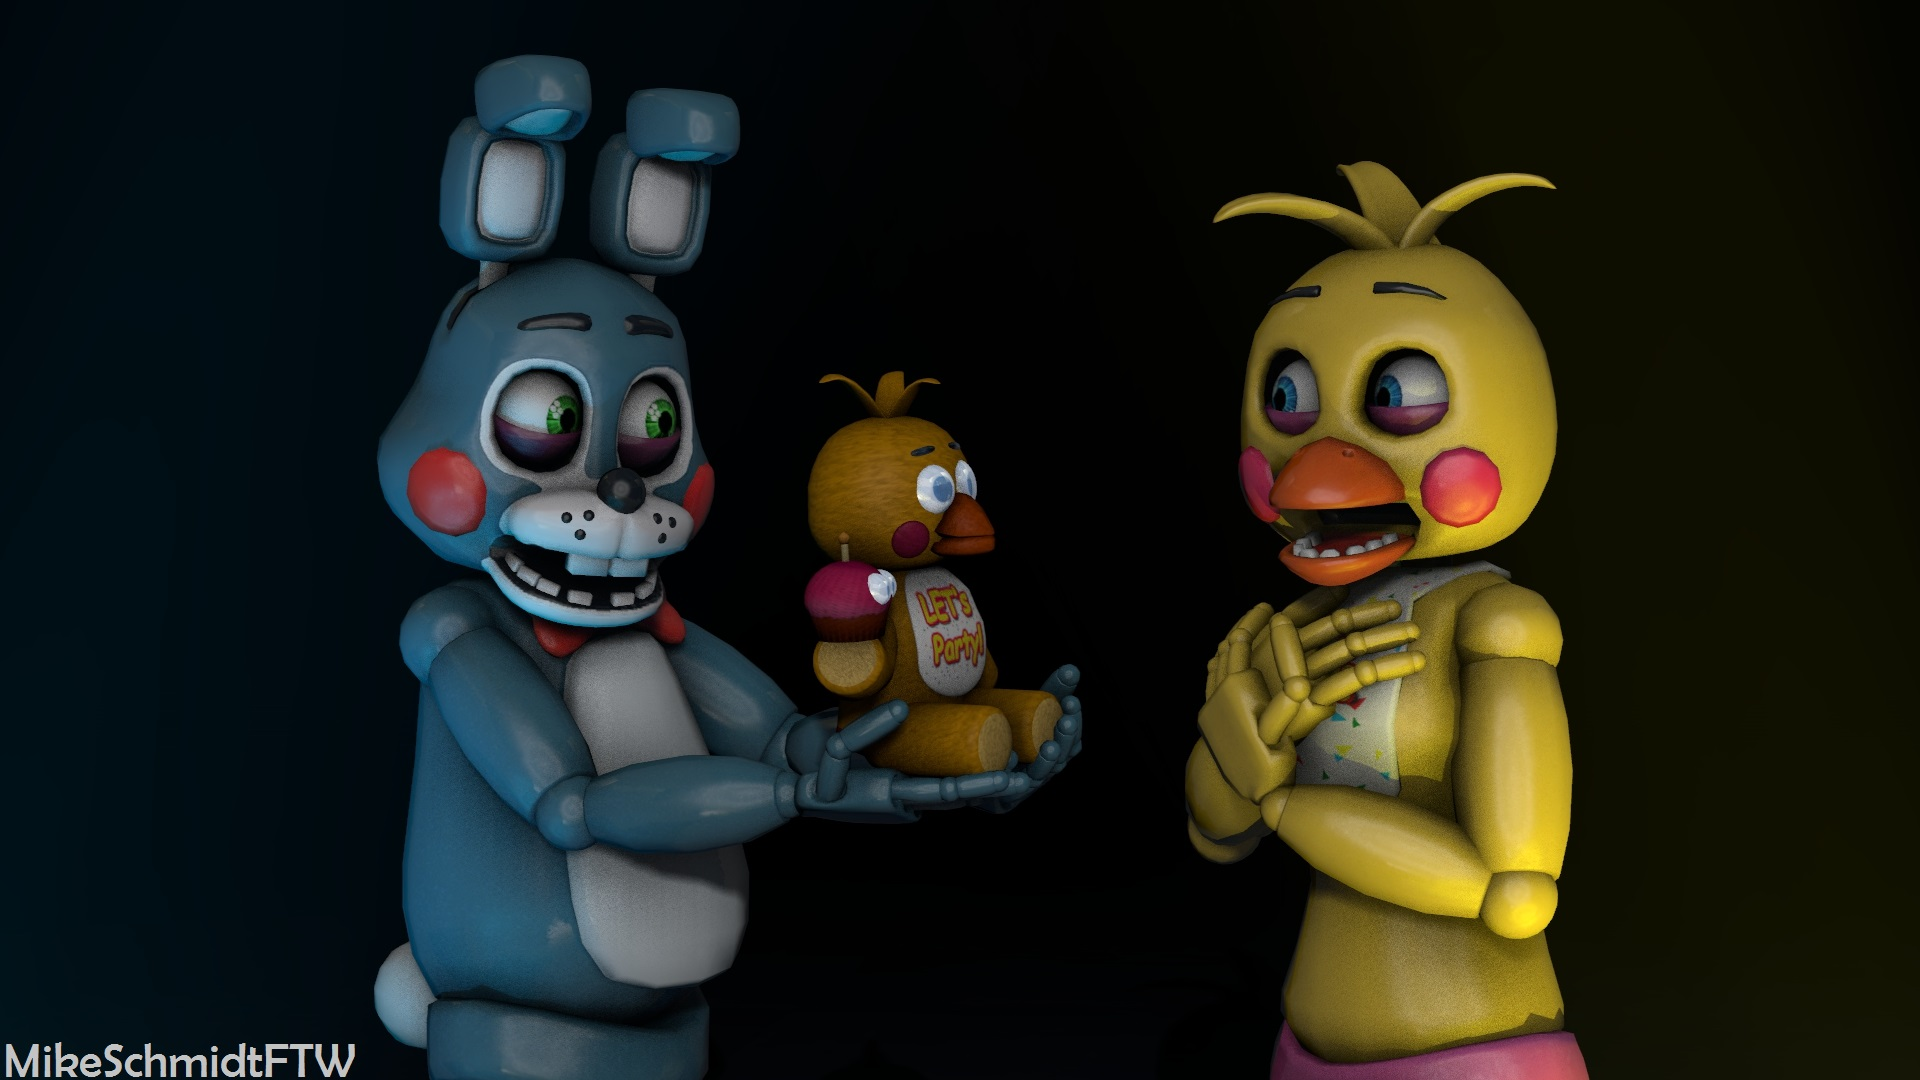 Toy Bonnie and Toy Chica by OfficerSchmidtFTW 1920x1080